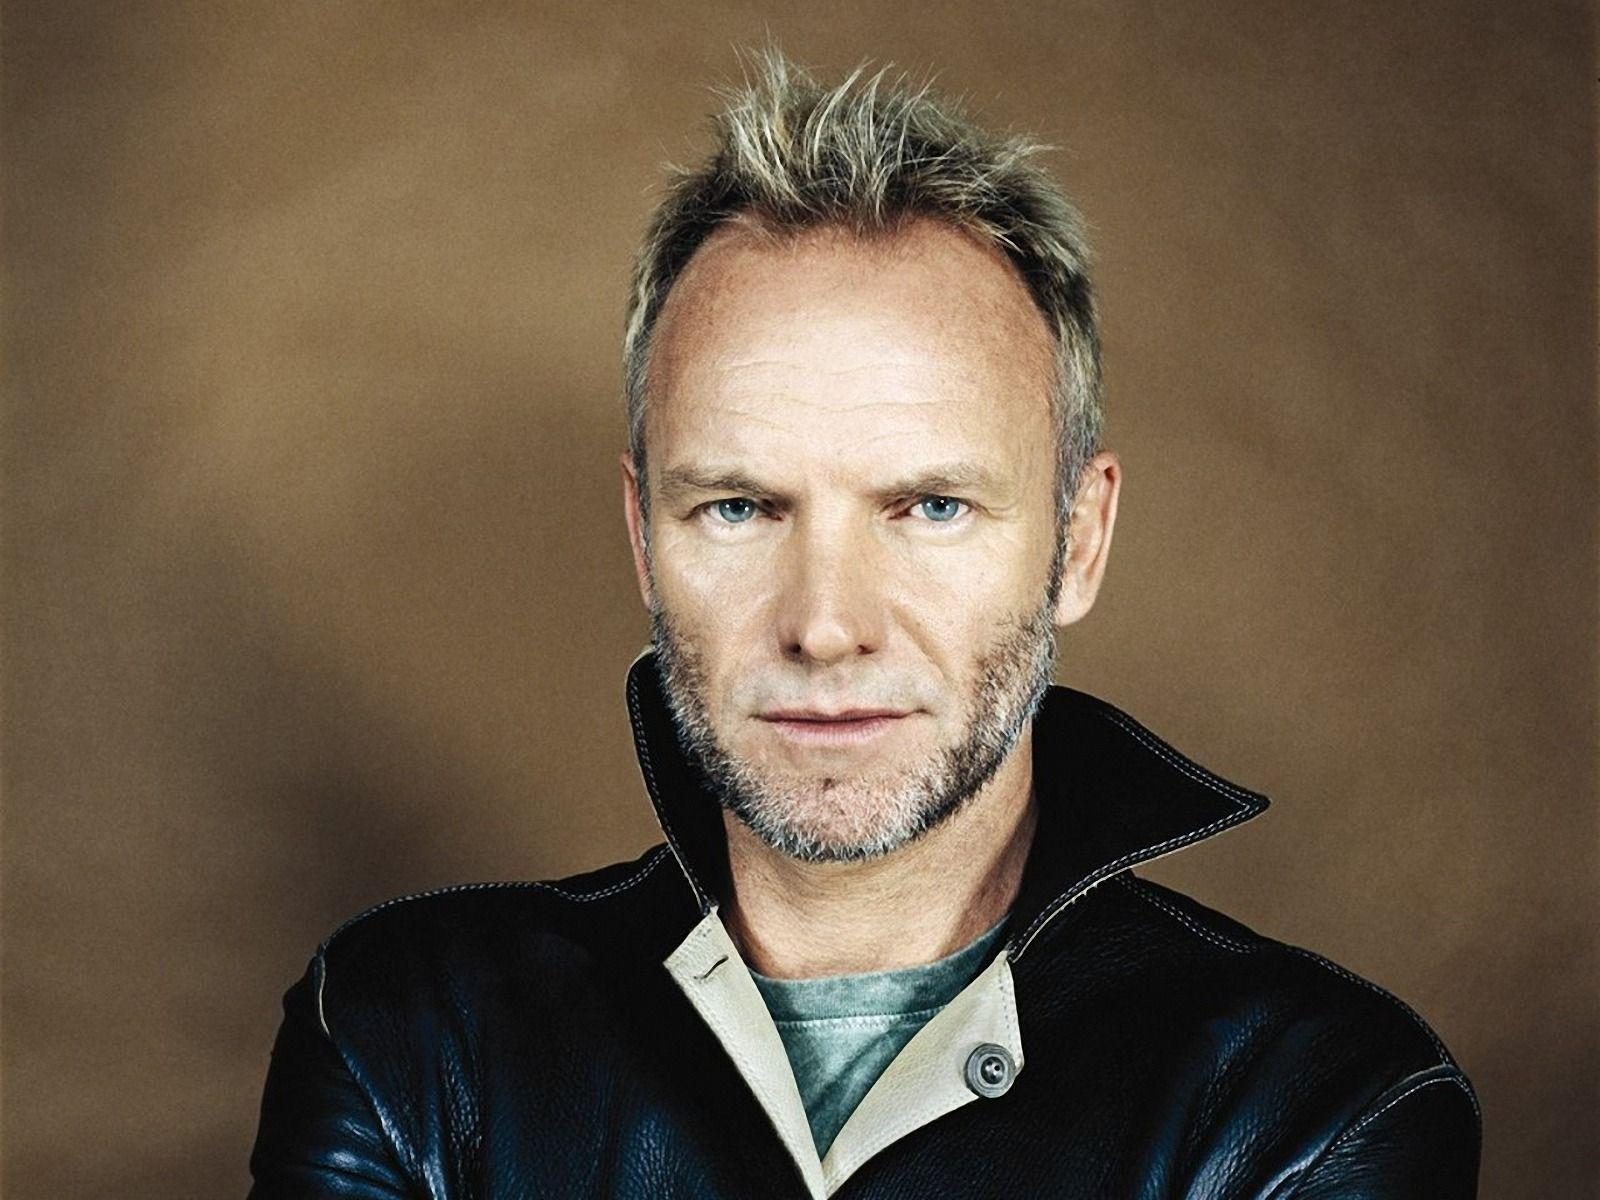 Sting wallpapers, Music, HQ Sting pictures | 4K Wallpapers